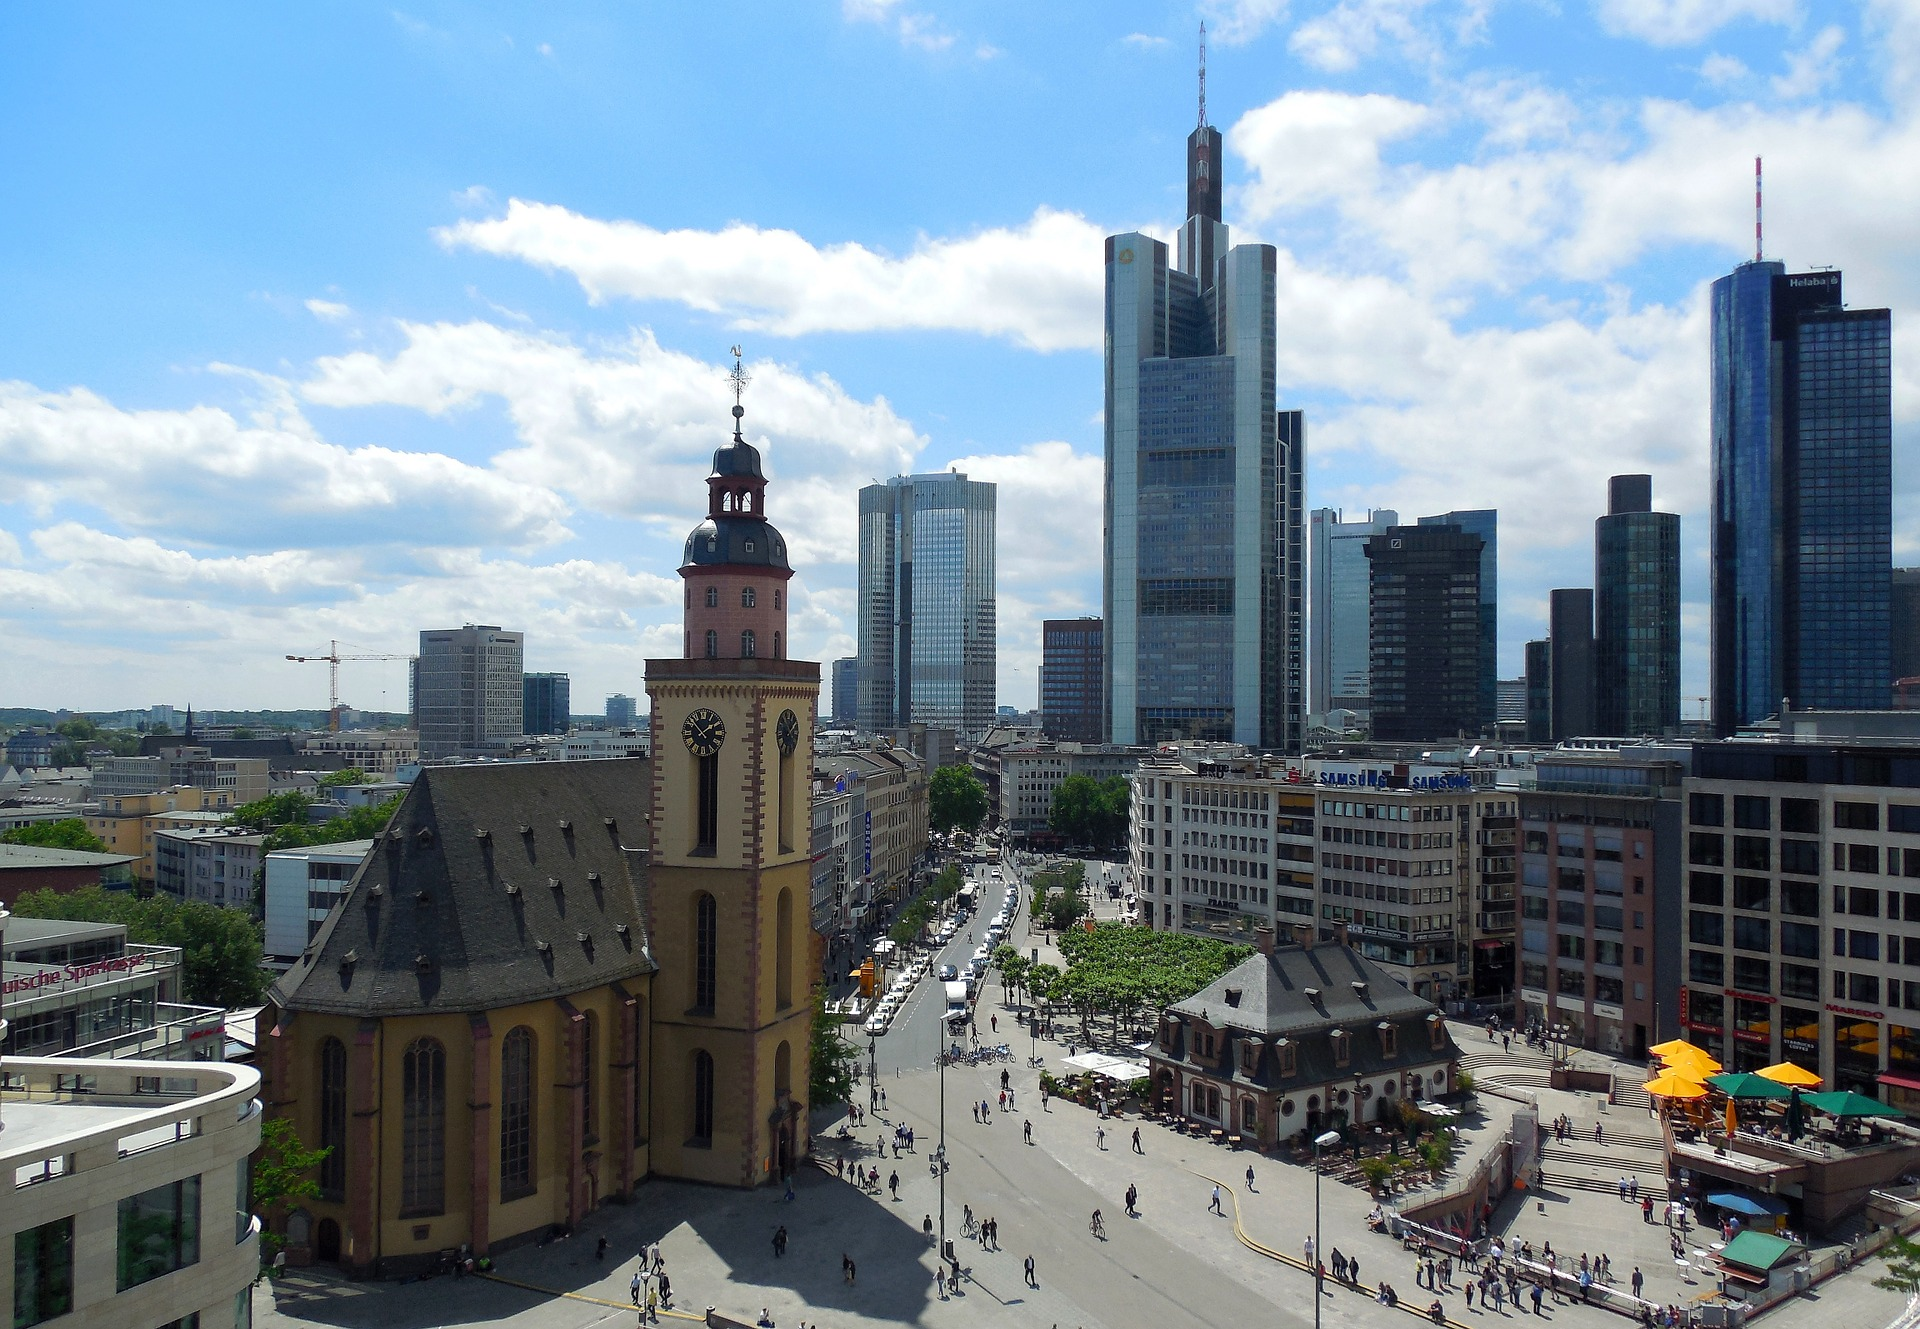 Main Guard Square in Frankfurt am Main, Germany